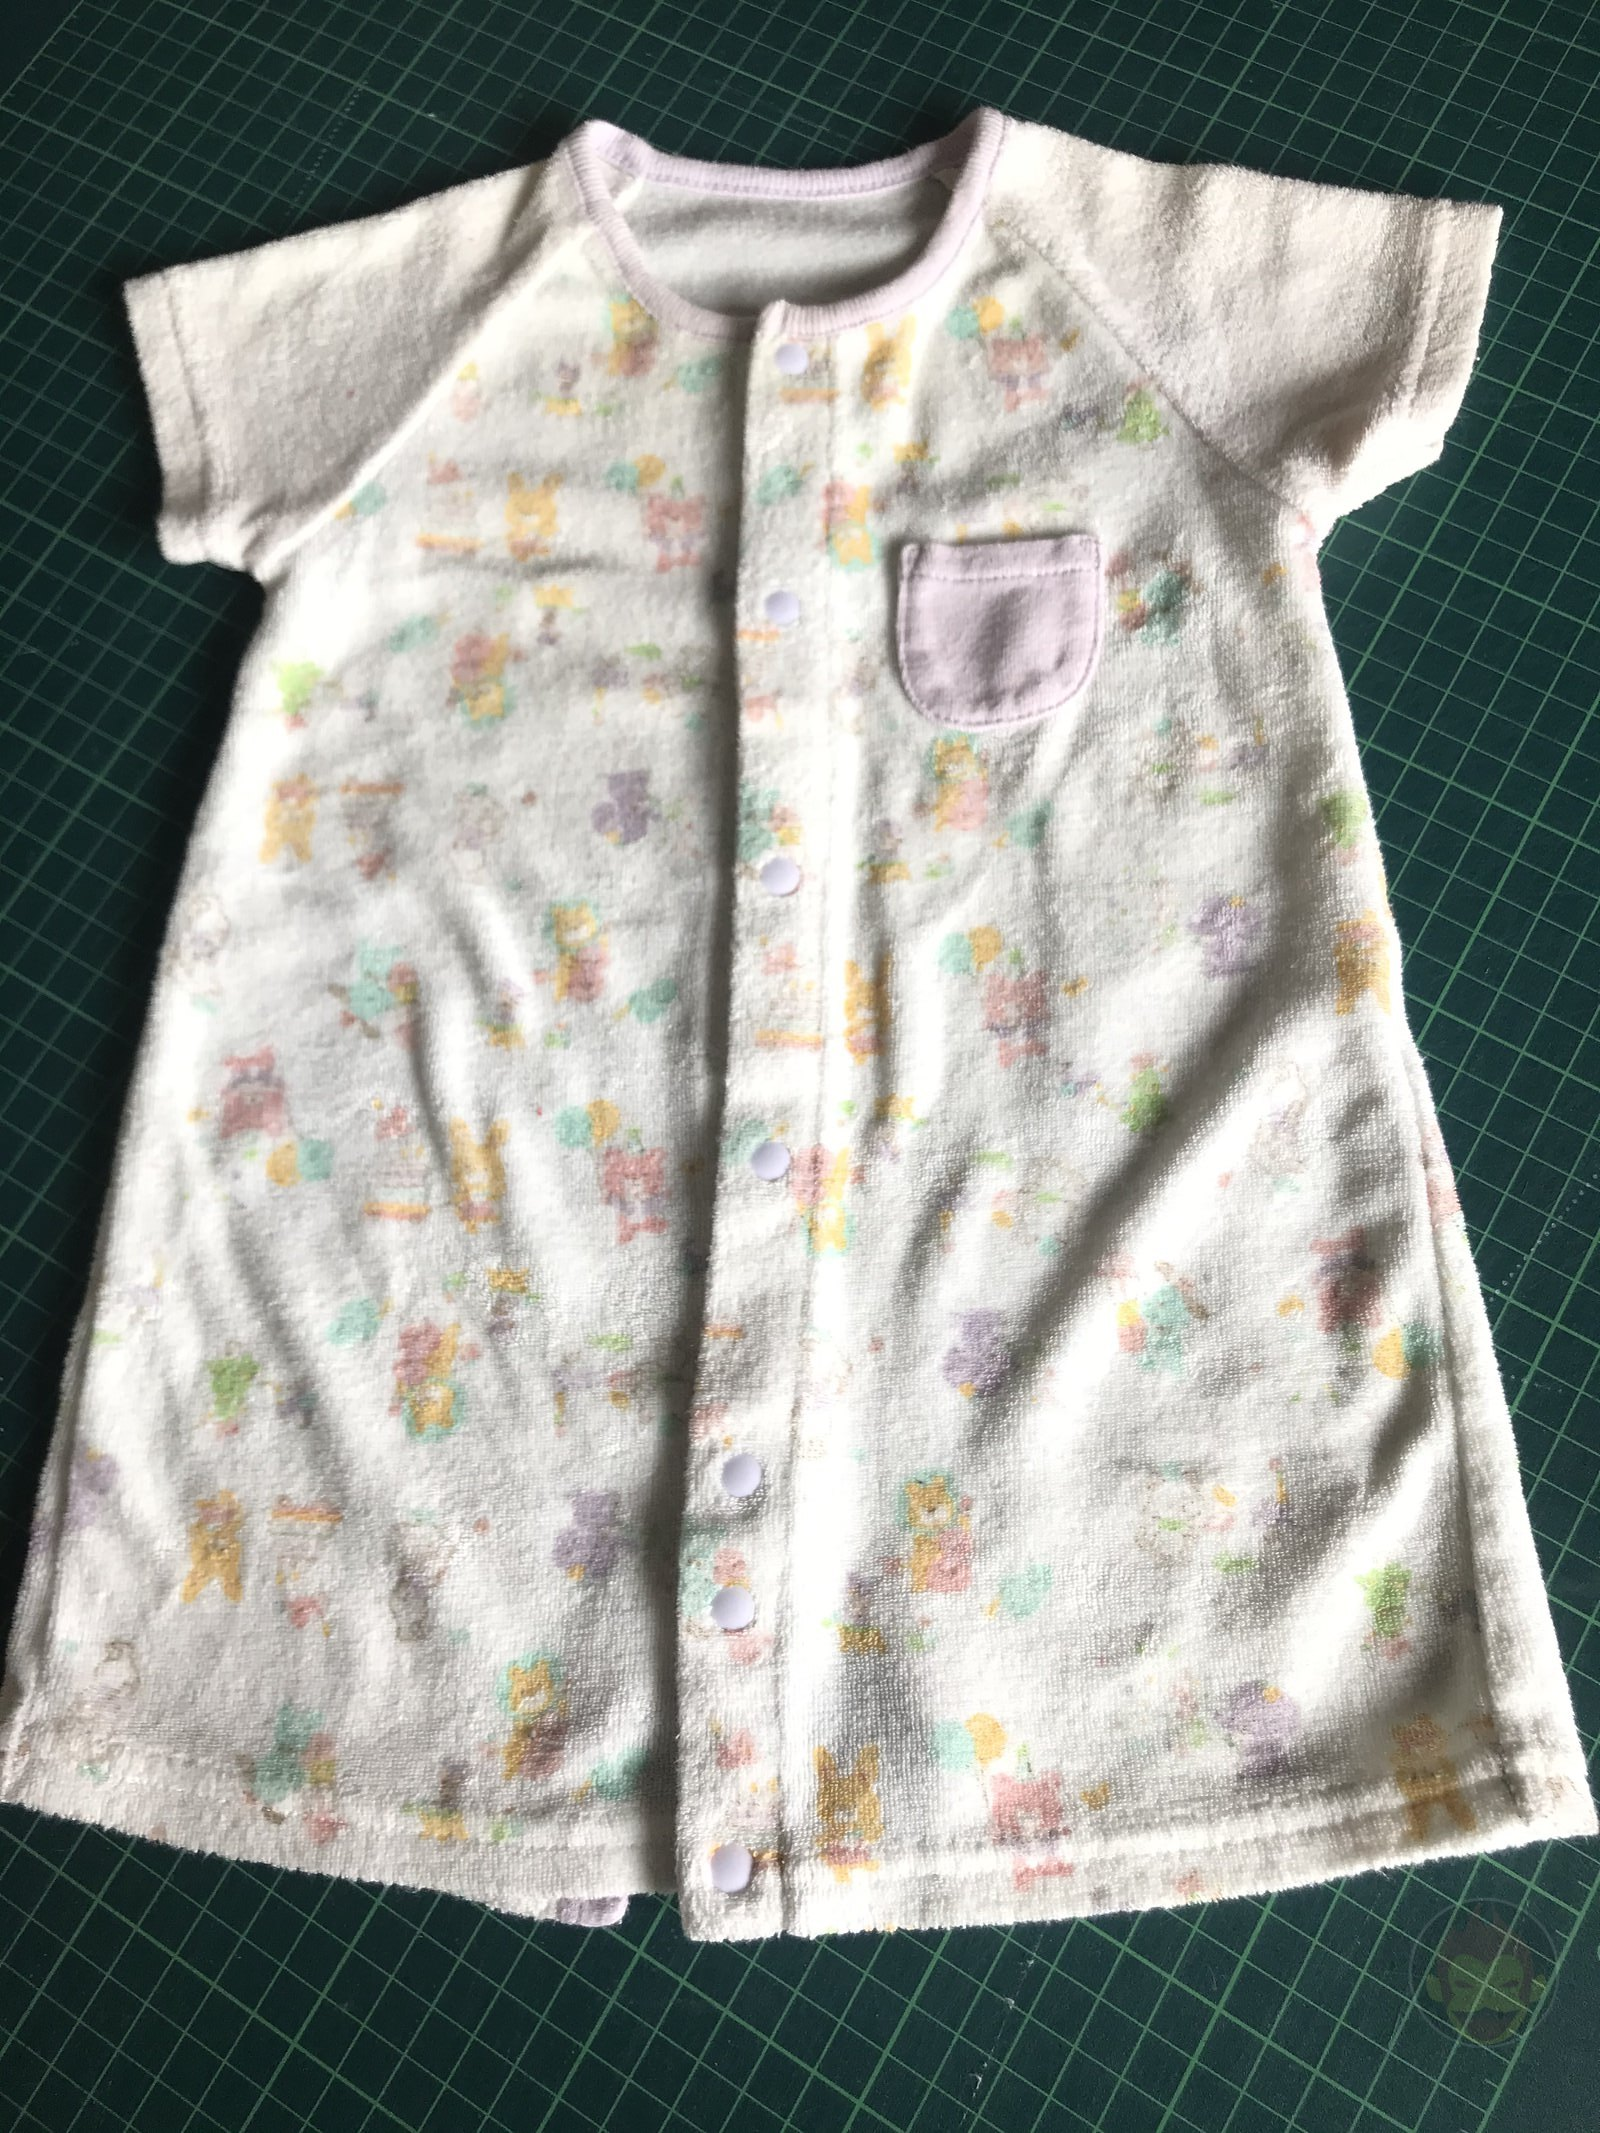 Baby Clothes remade into new items 03